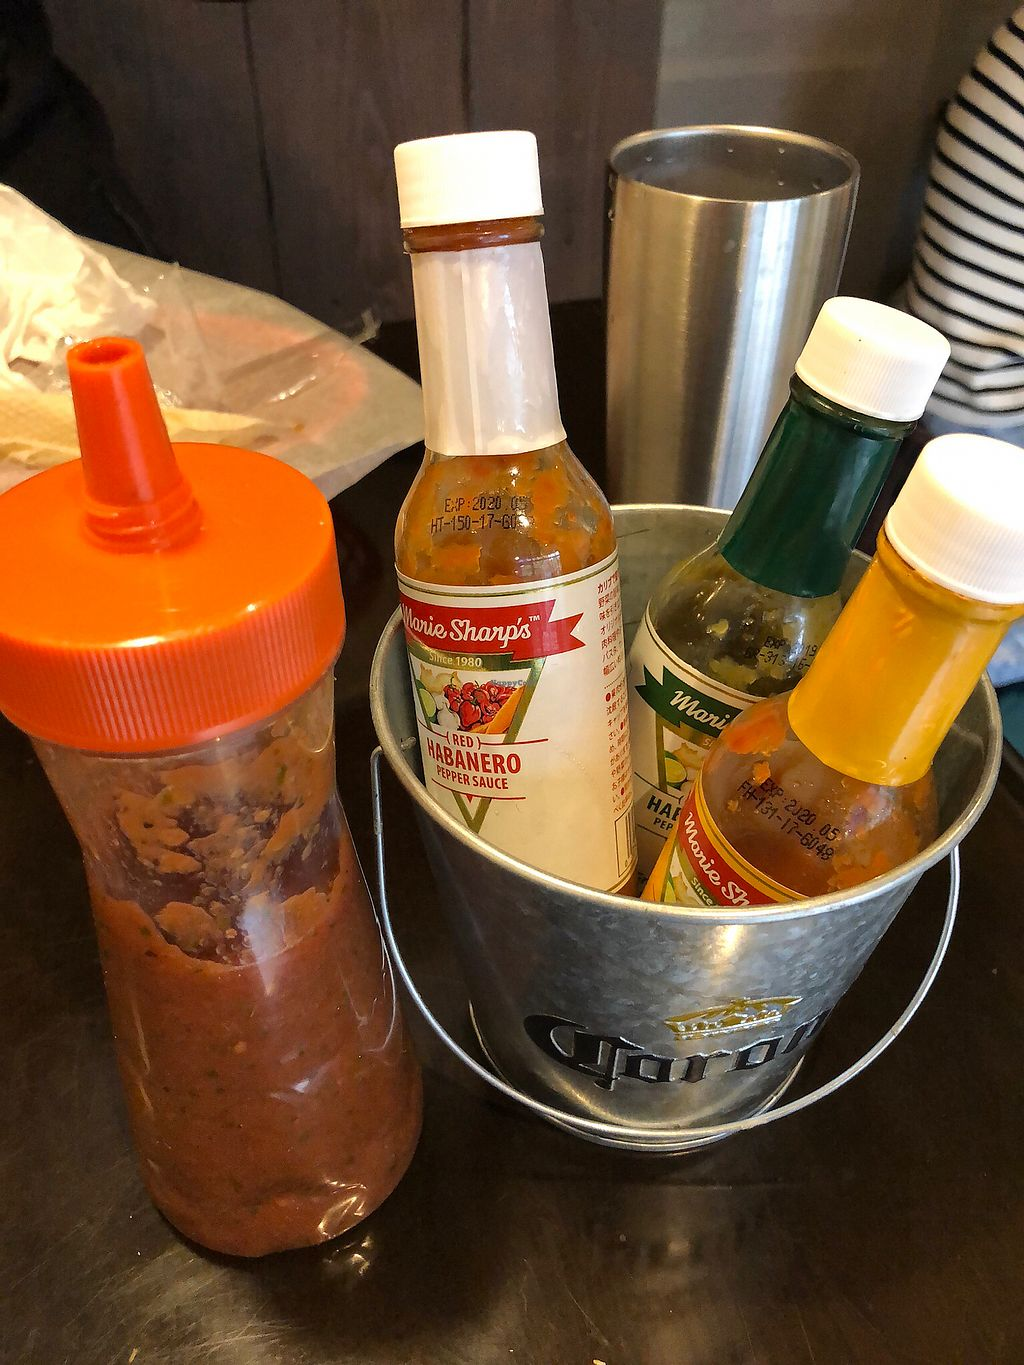 "Photo of Que Pasa  by <a href=""/members/profile/philblais"">philblais</a> <br/>Amazing selection of hot sauces including a homemade salsa <br/> November 29, 2017  - <a href='/contact/abuse/image/87926/330311'>Report</a>"